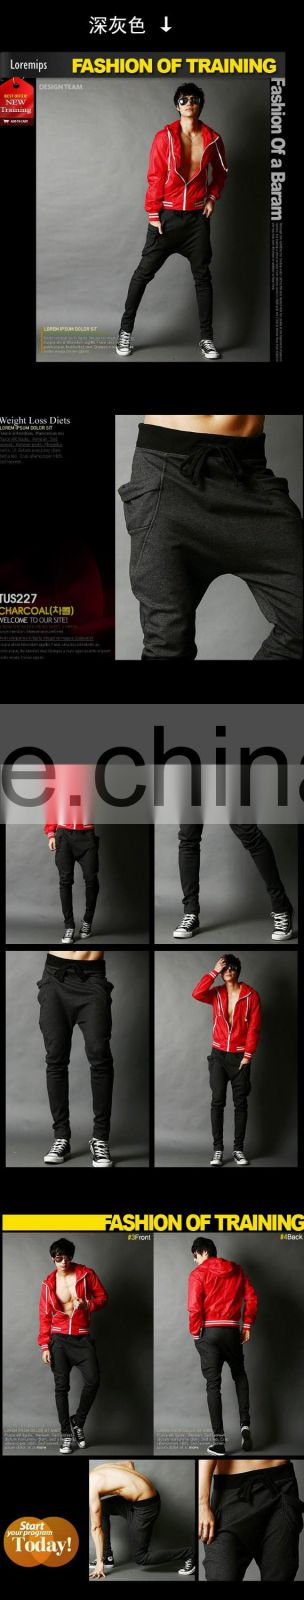 New Fashion Sweatpants Trousers Latest Design Men Harem Pants Sport Pants , Big Pocket Design Cargo Men Joggers